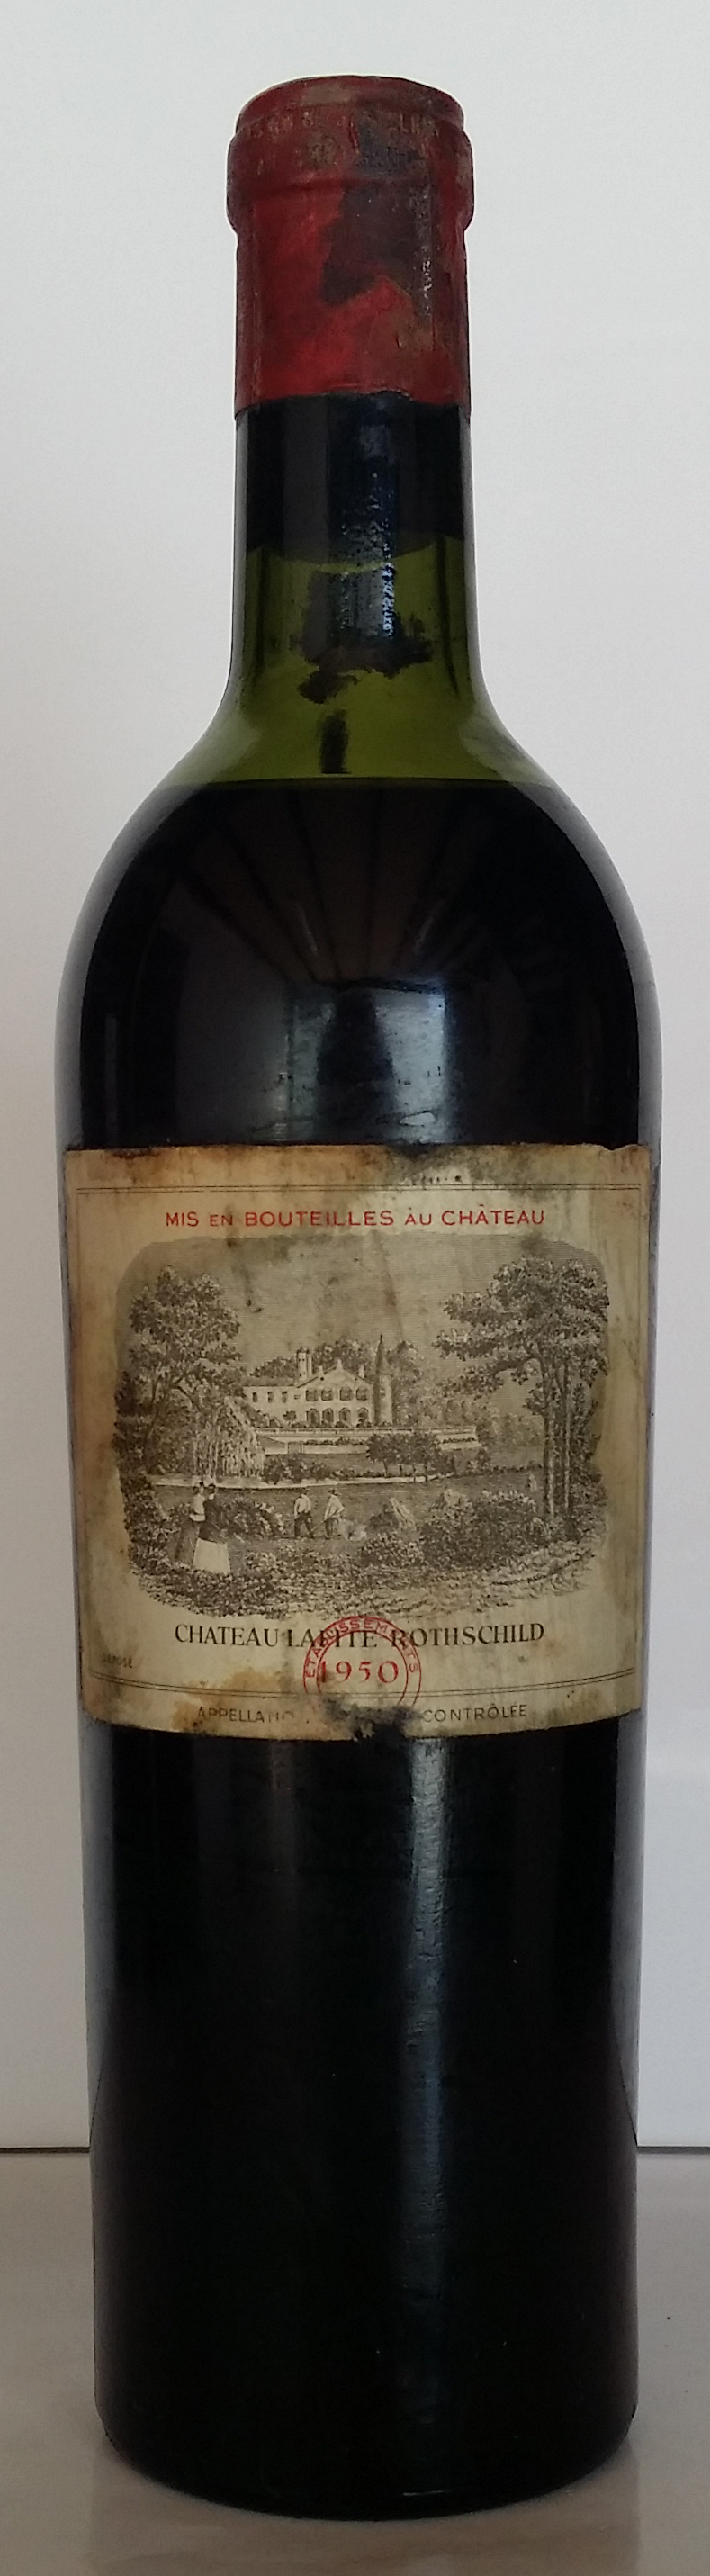 1950 Domaines Barons de Rothschild Chateau Lafite Rothschild